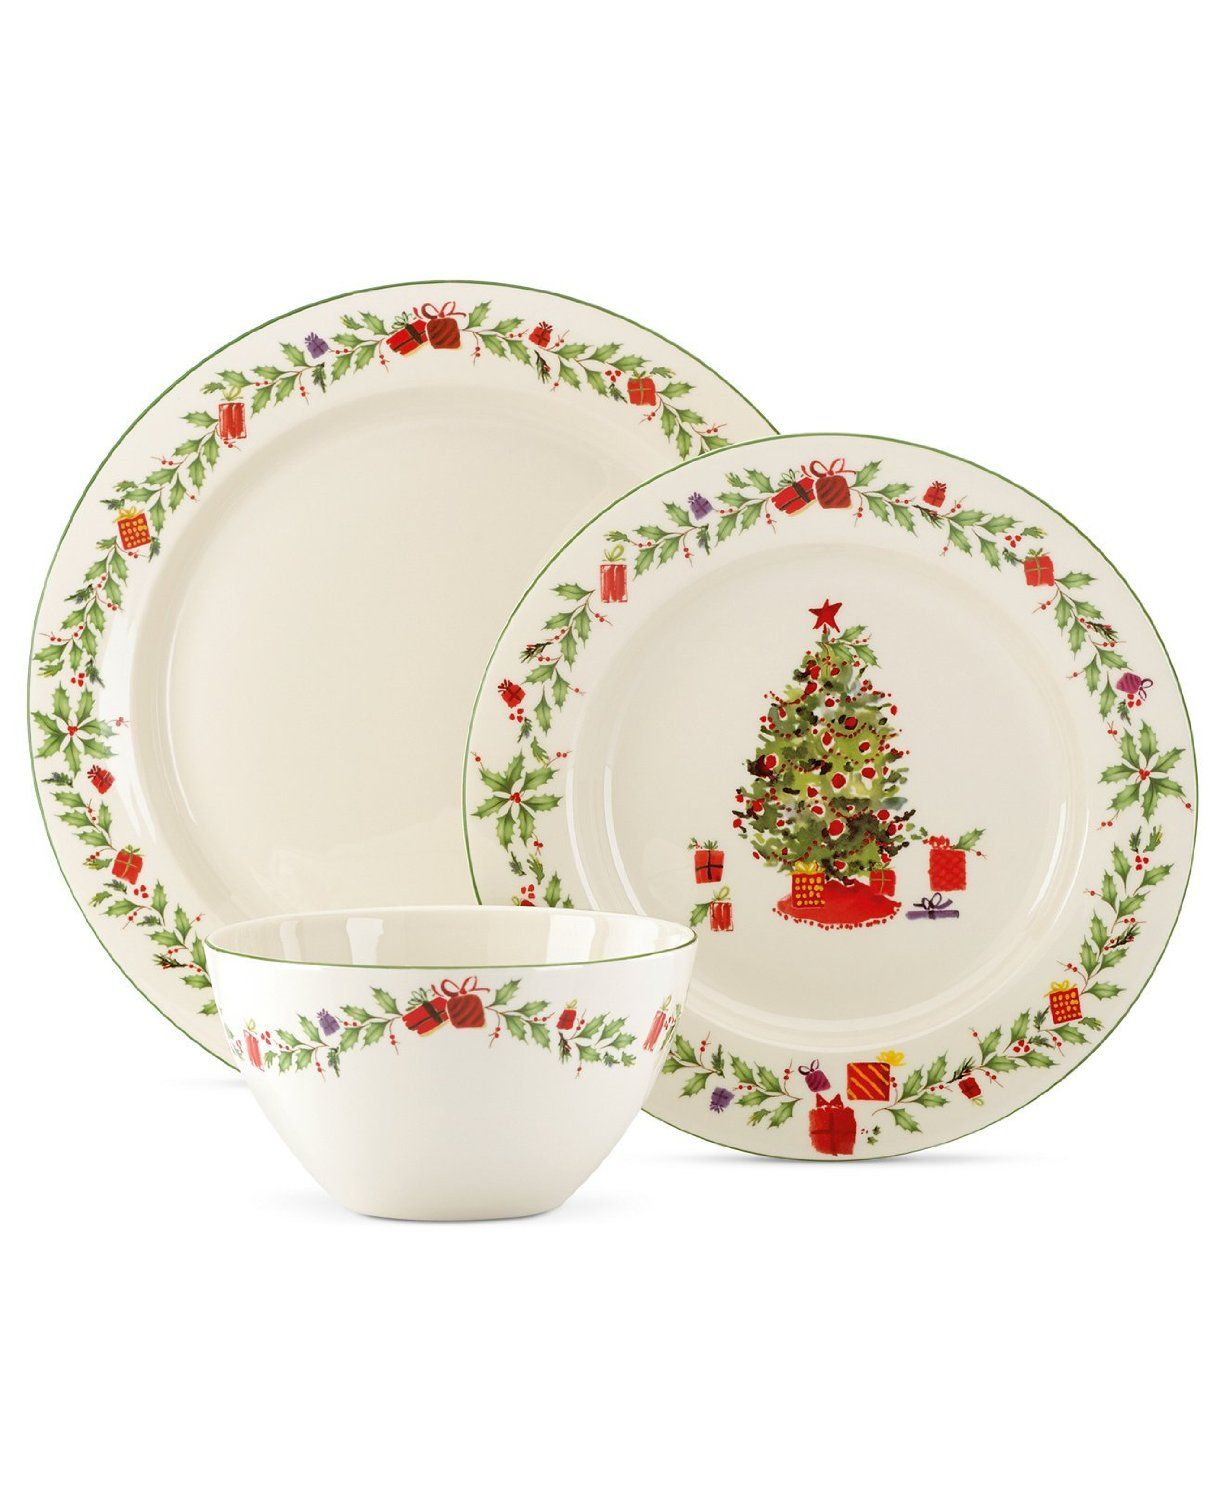 Lenox Holiday 3 Pc Place Setting With Images Christmas Dinnerware Christmas Settings Christmas Place Settings